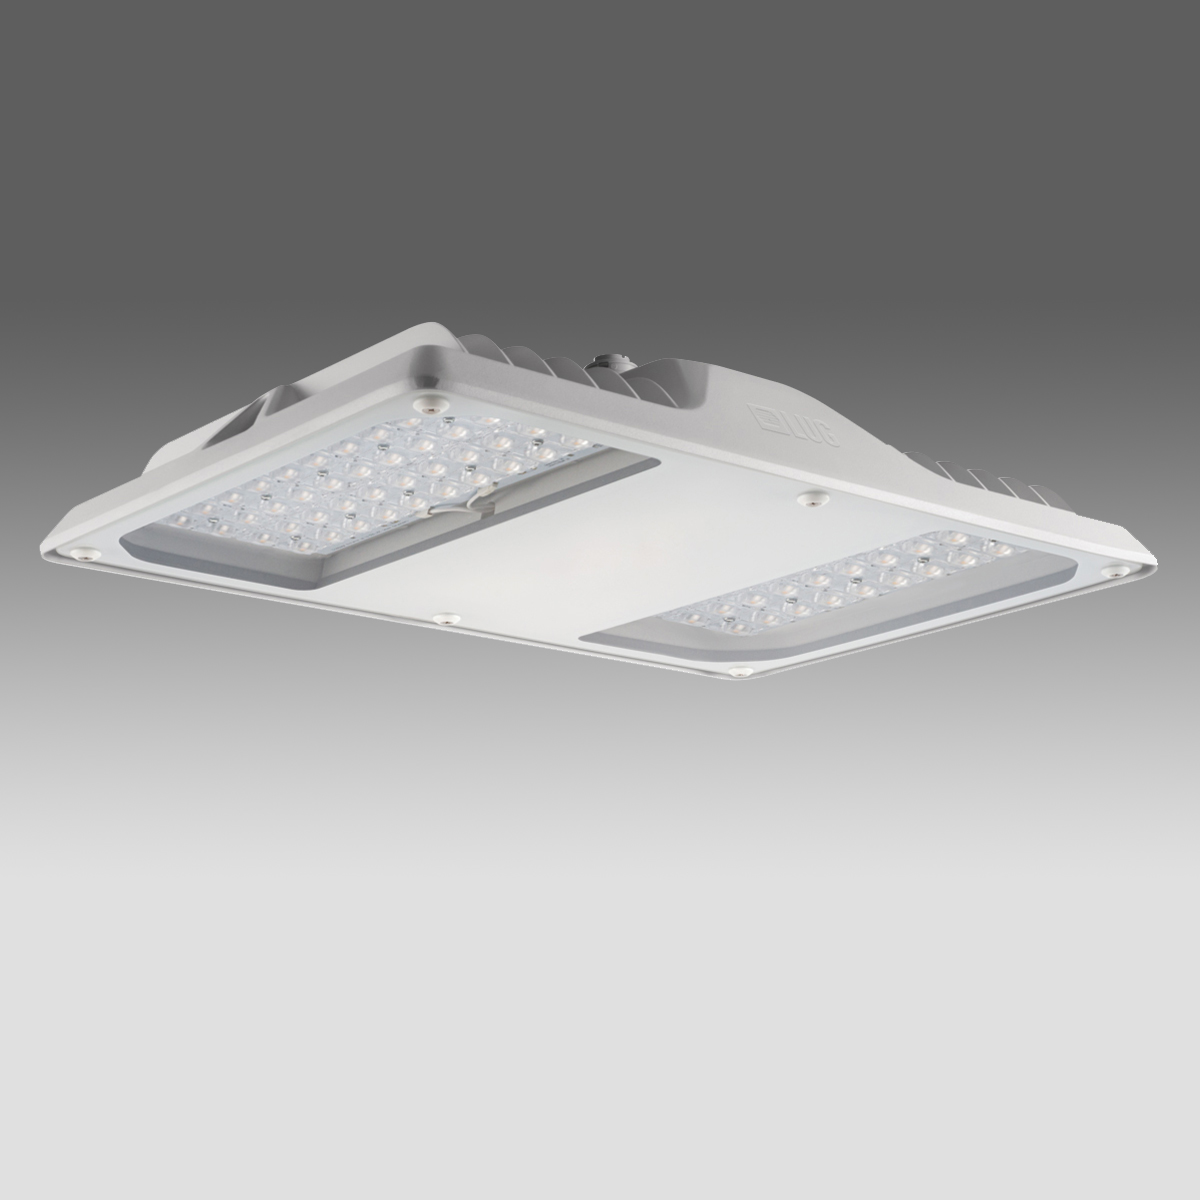 1 Stk Arktur Square PLUS LED 206W 24850lm/757 EVG IP65 110° grau LIG4252013